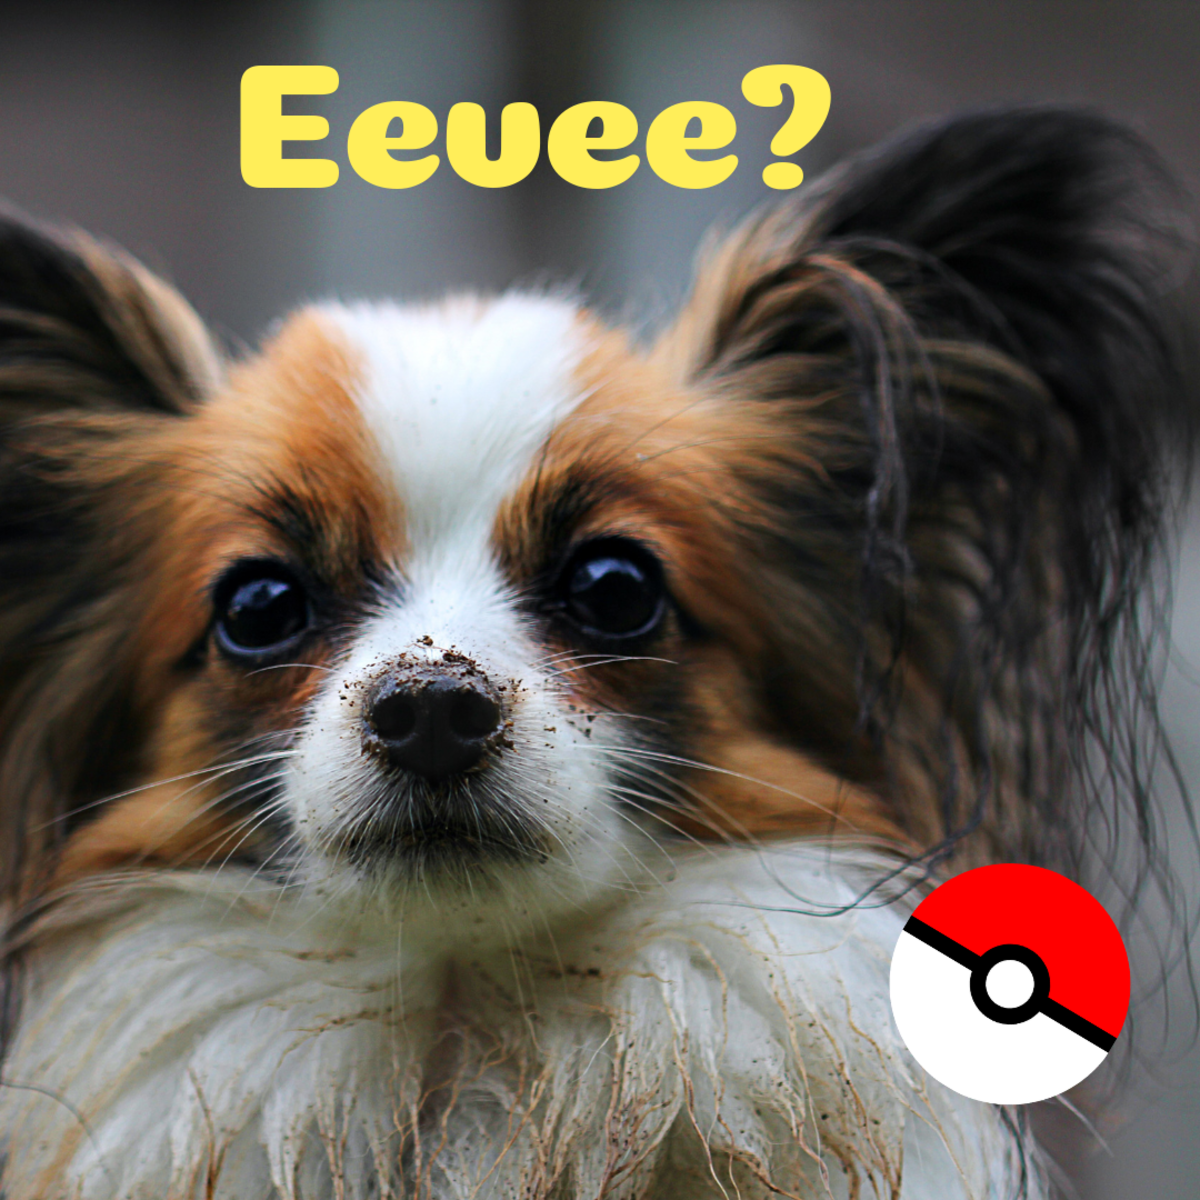 Is she an Eevee or an Evie?